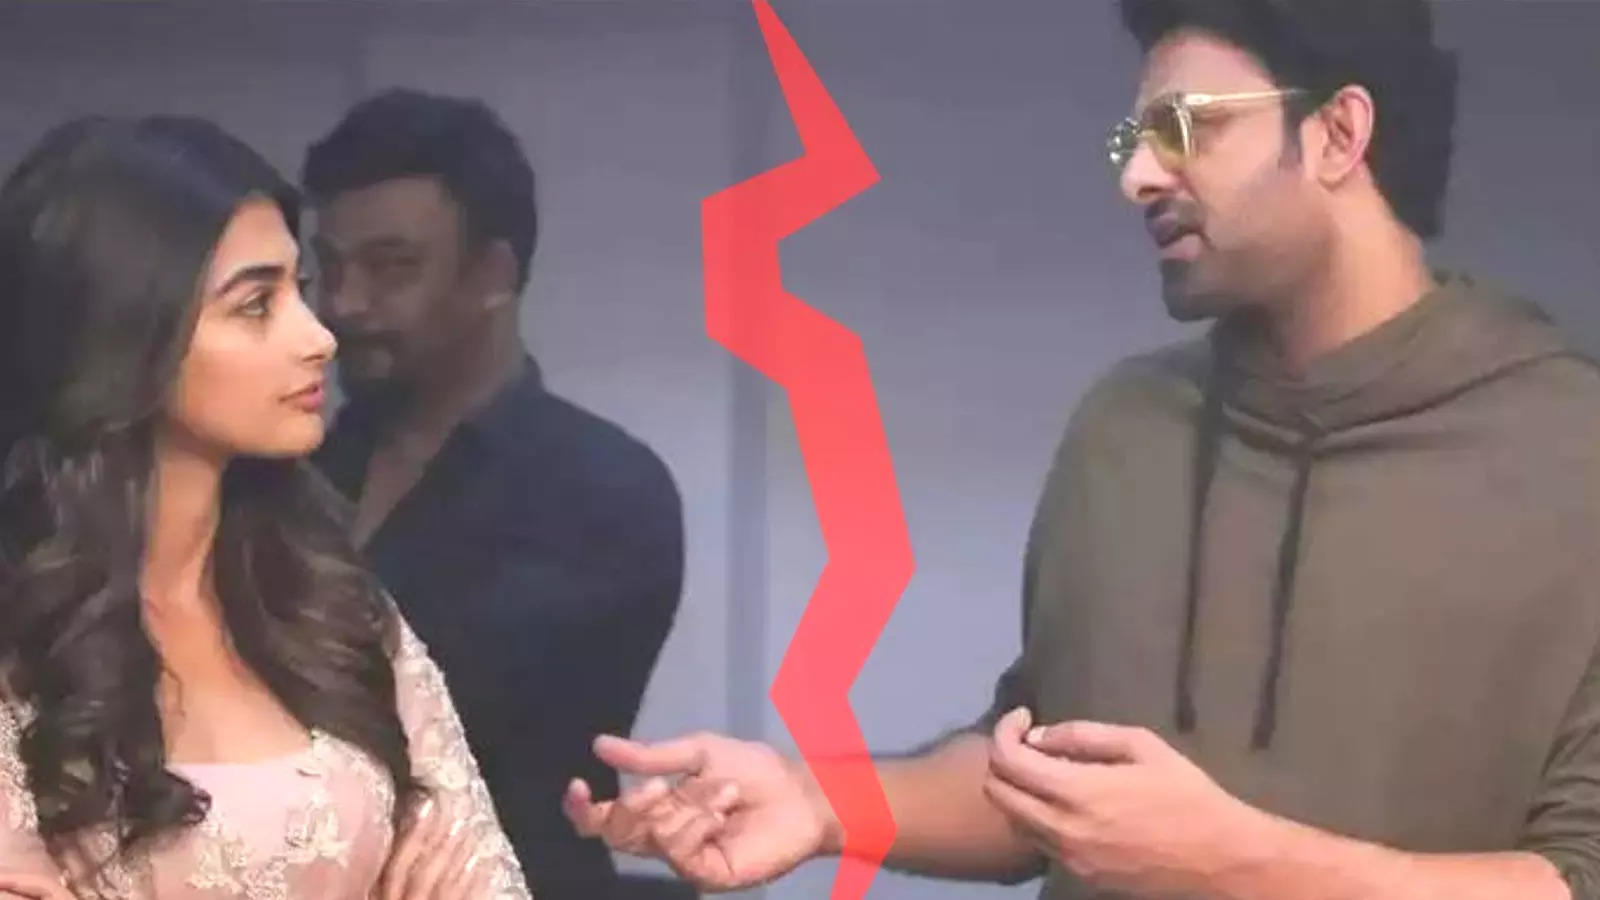 radhe-shyam-is-prabhas-annoyed-with-co-star-pooja-hegde-makers-issue-statement